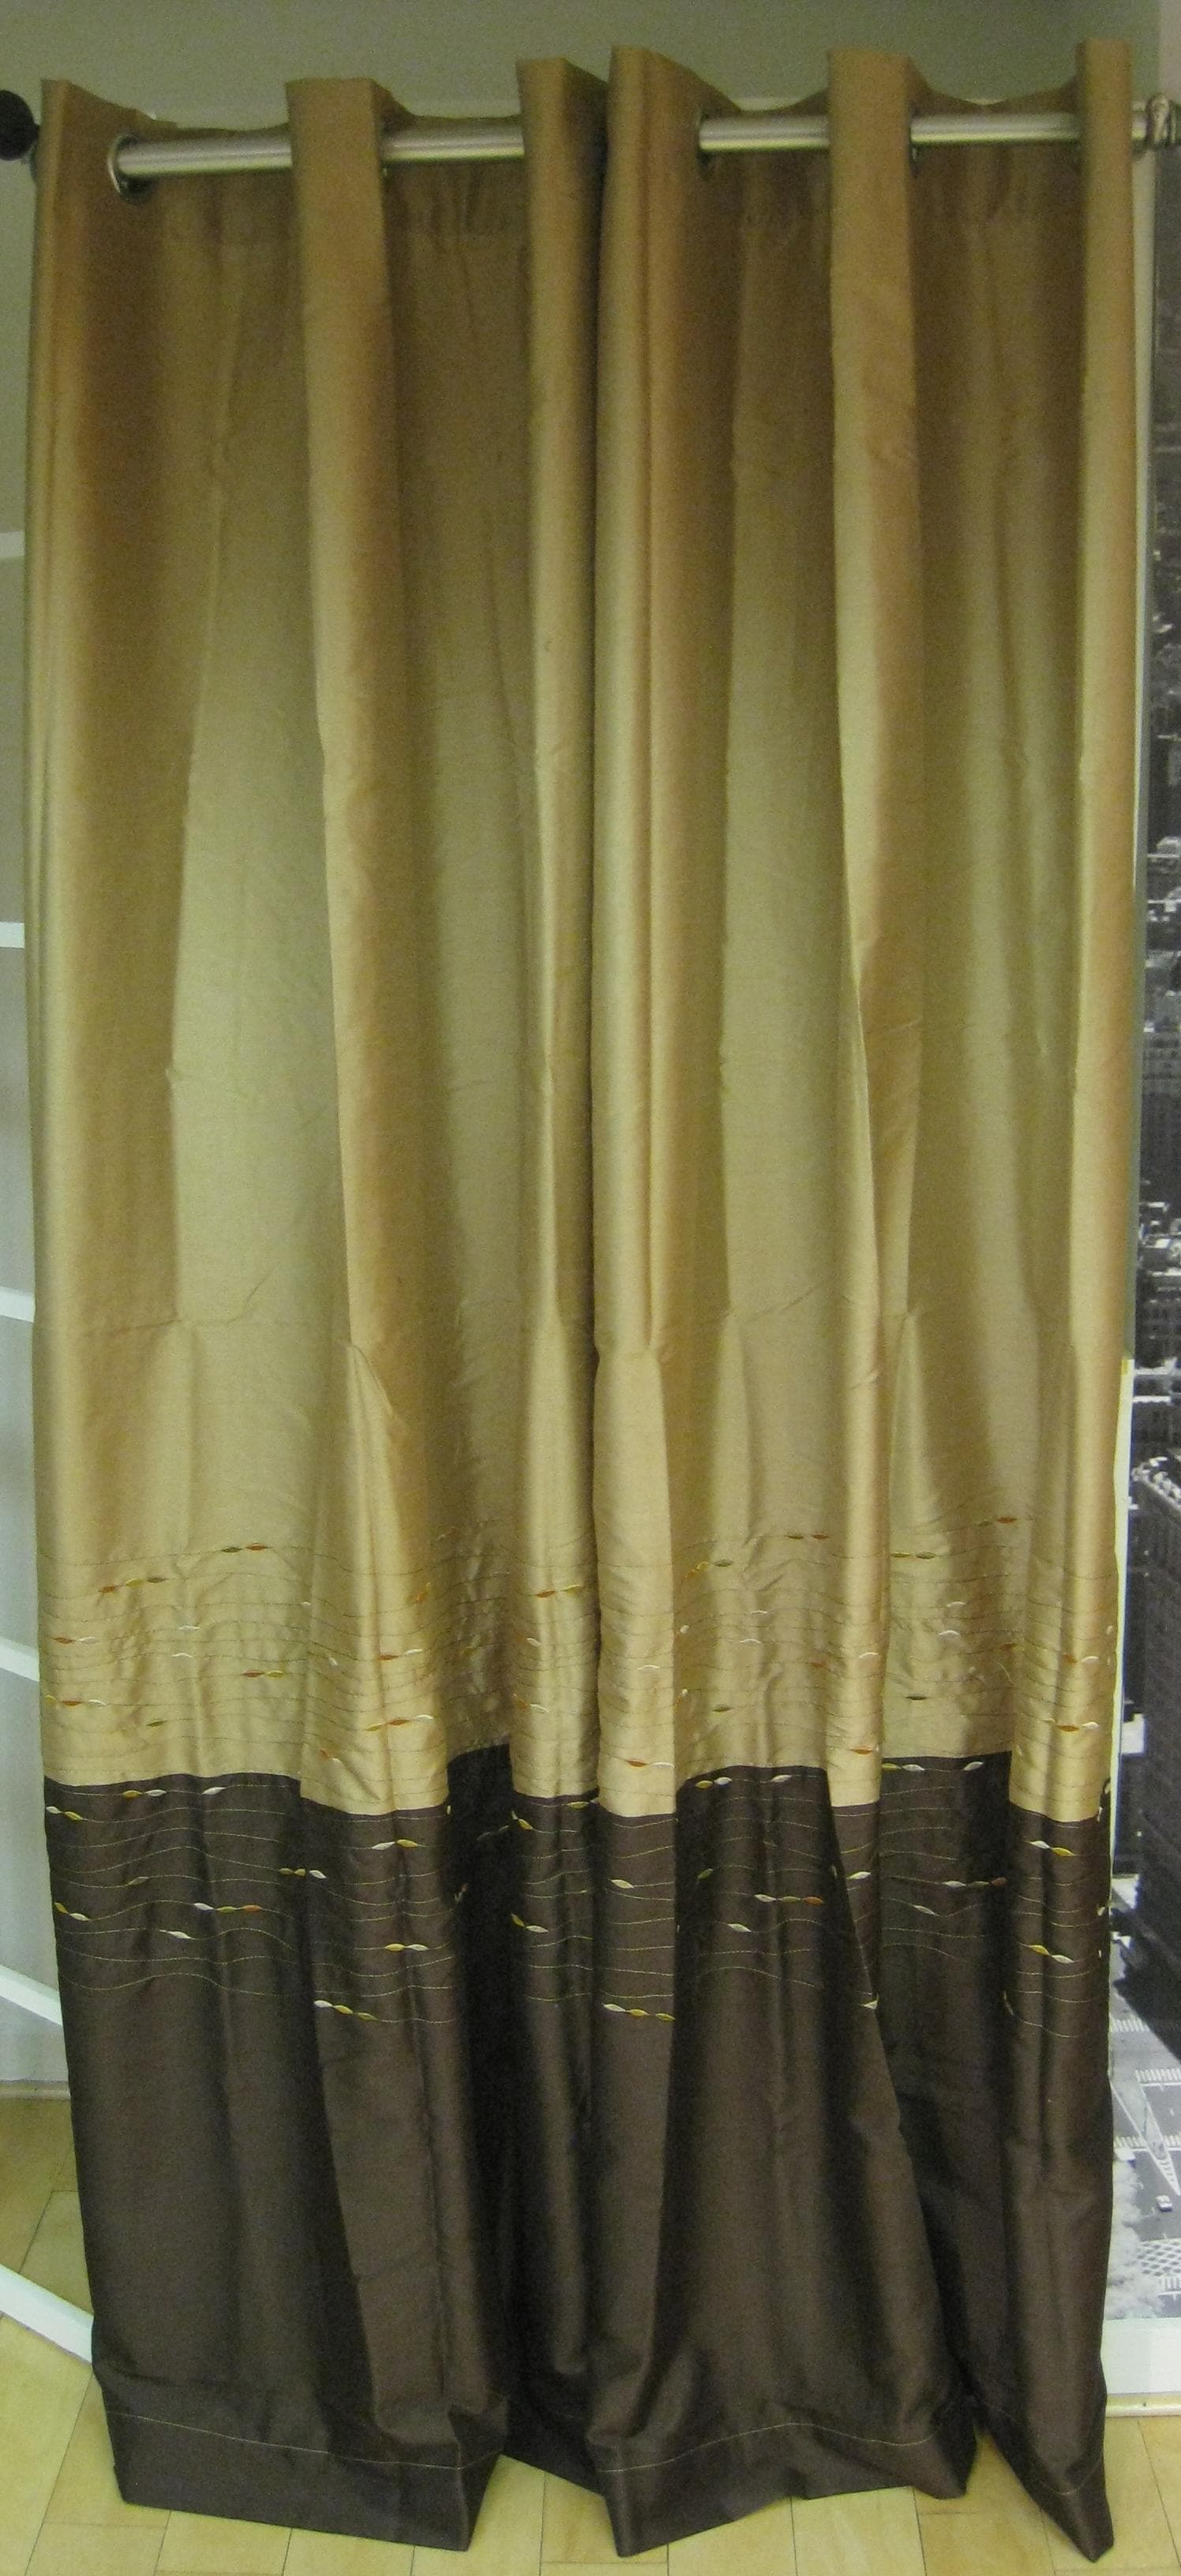 Horizon Embroidery Grommet 84-inch Curtain Panel